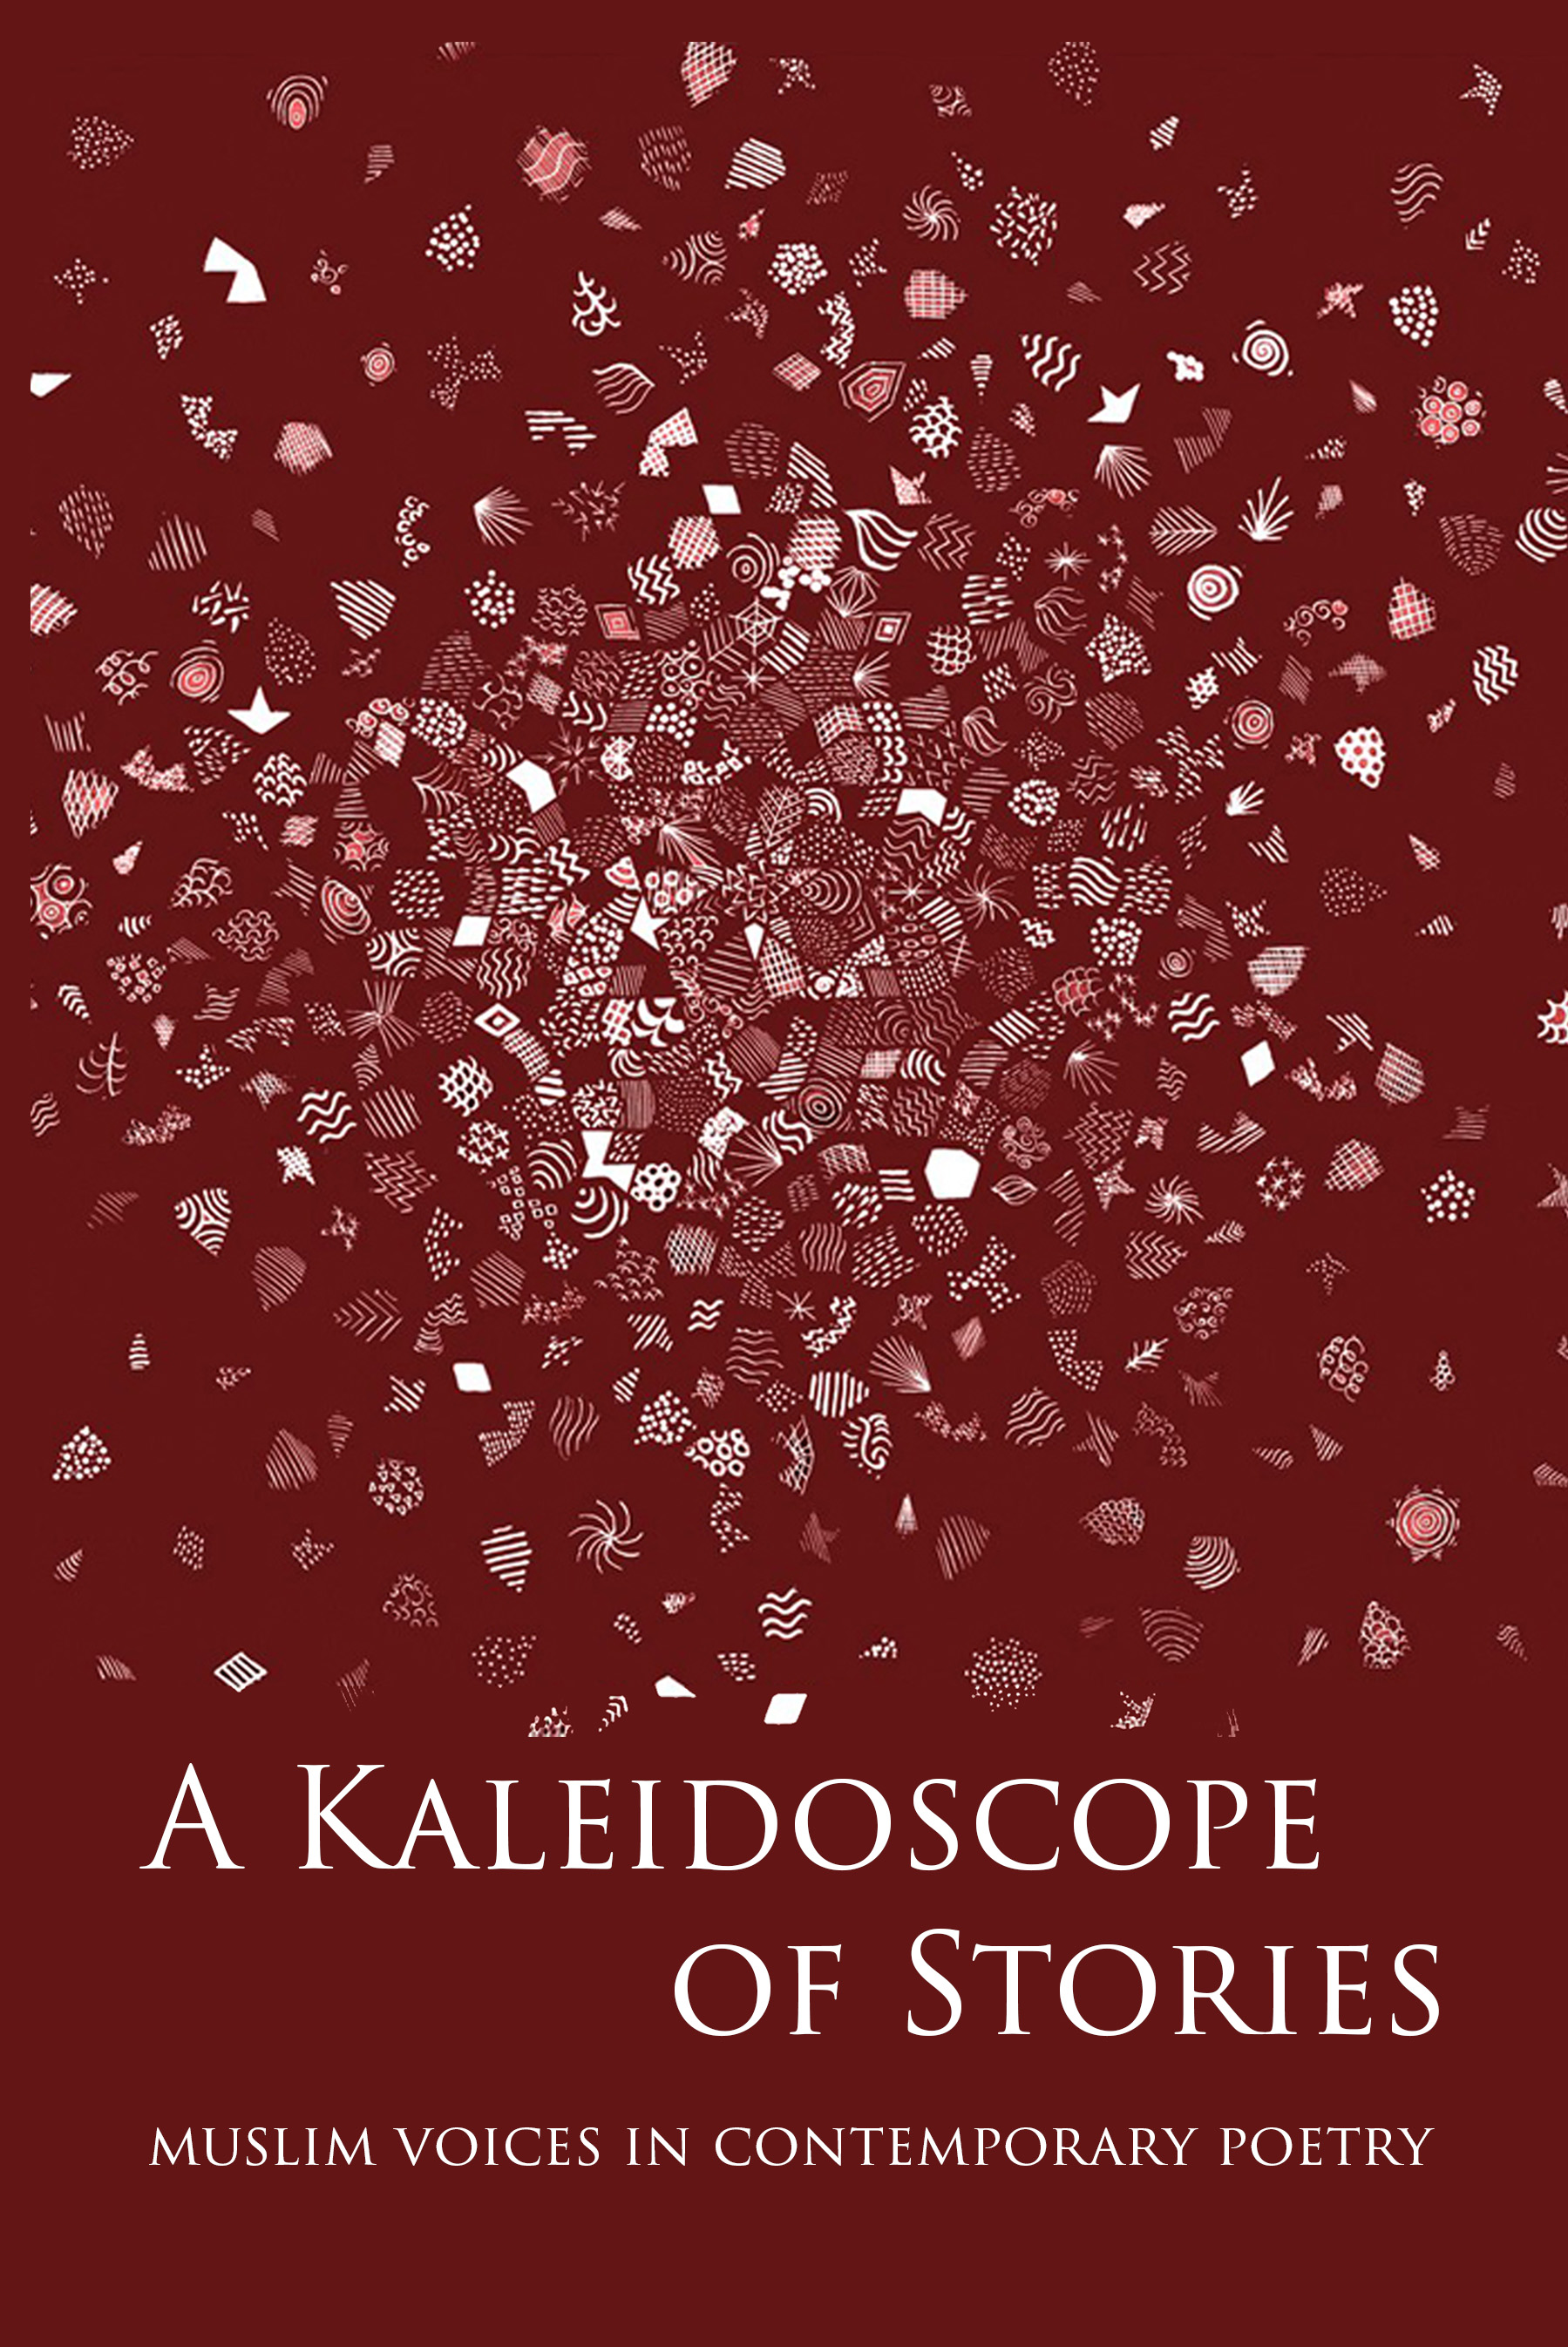 A Kaleidoscope of Stories - Muslim Voices in Contemporary Poetry